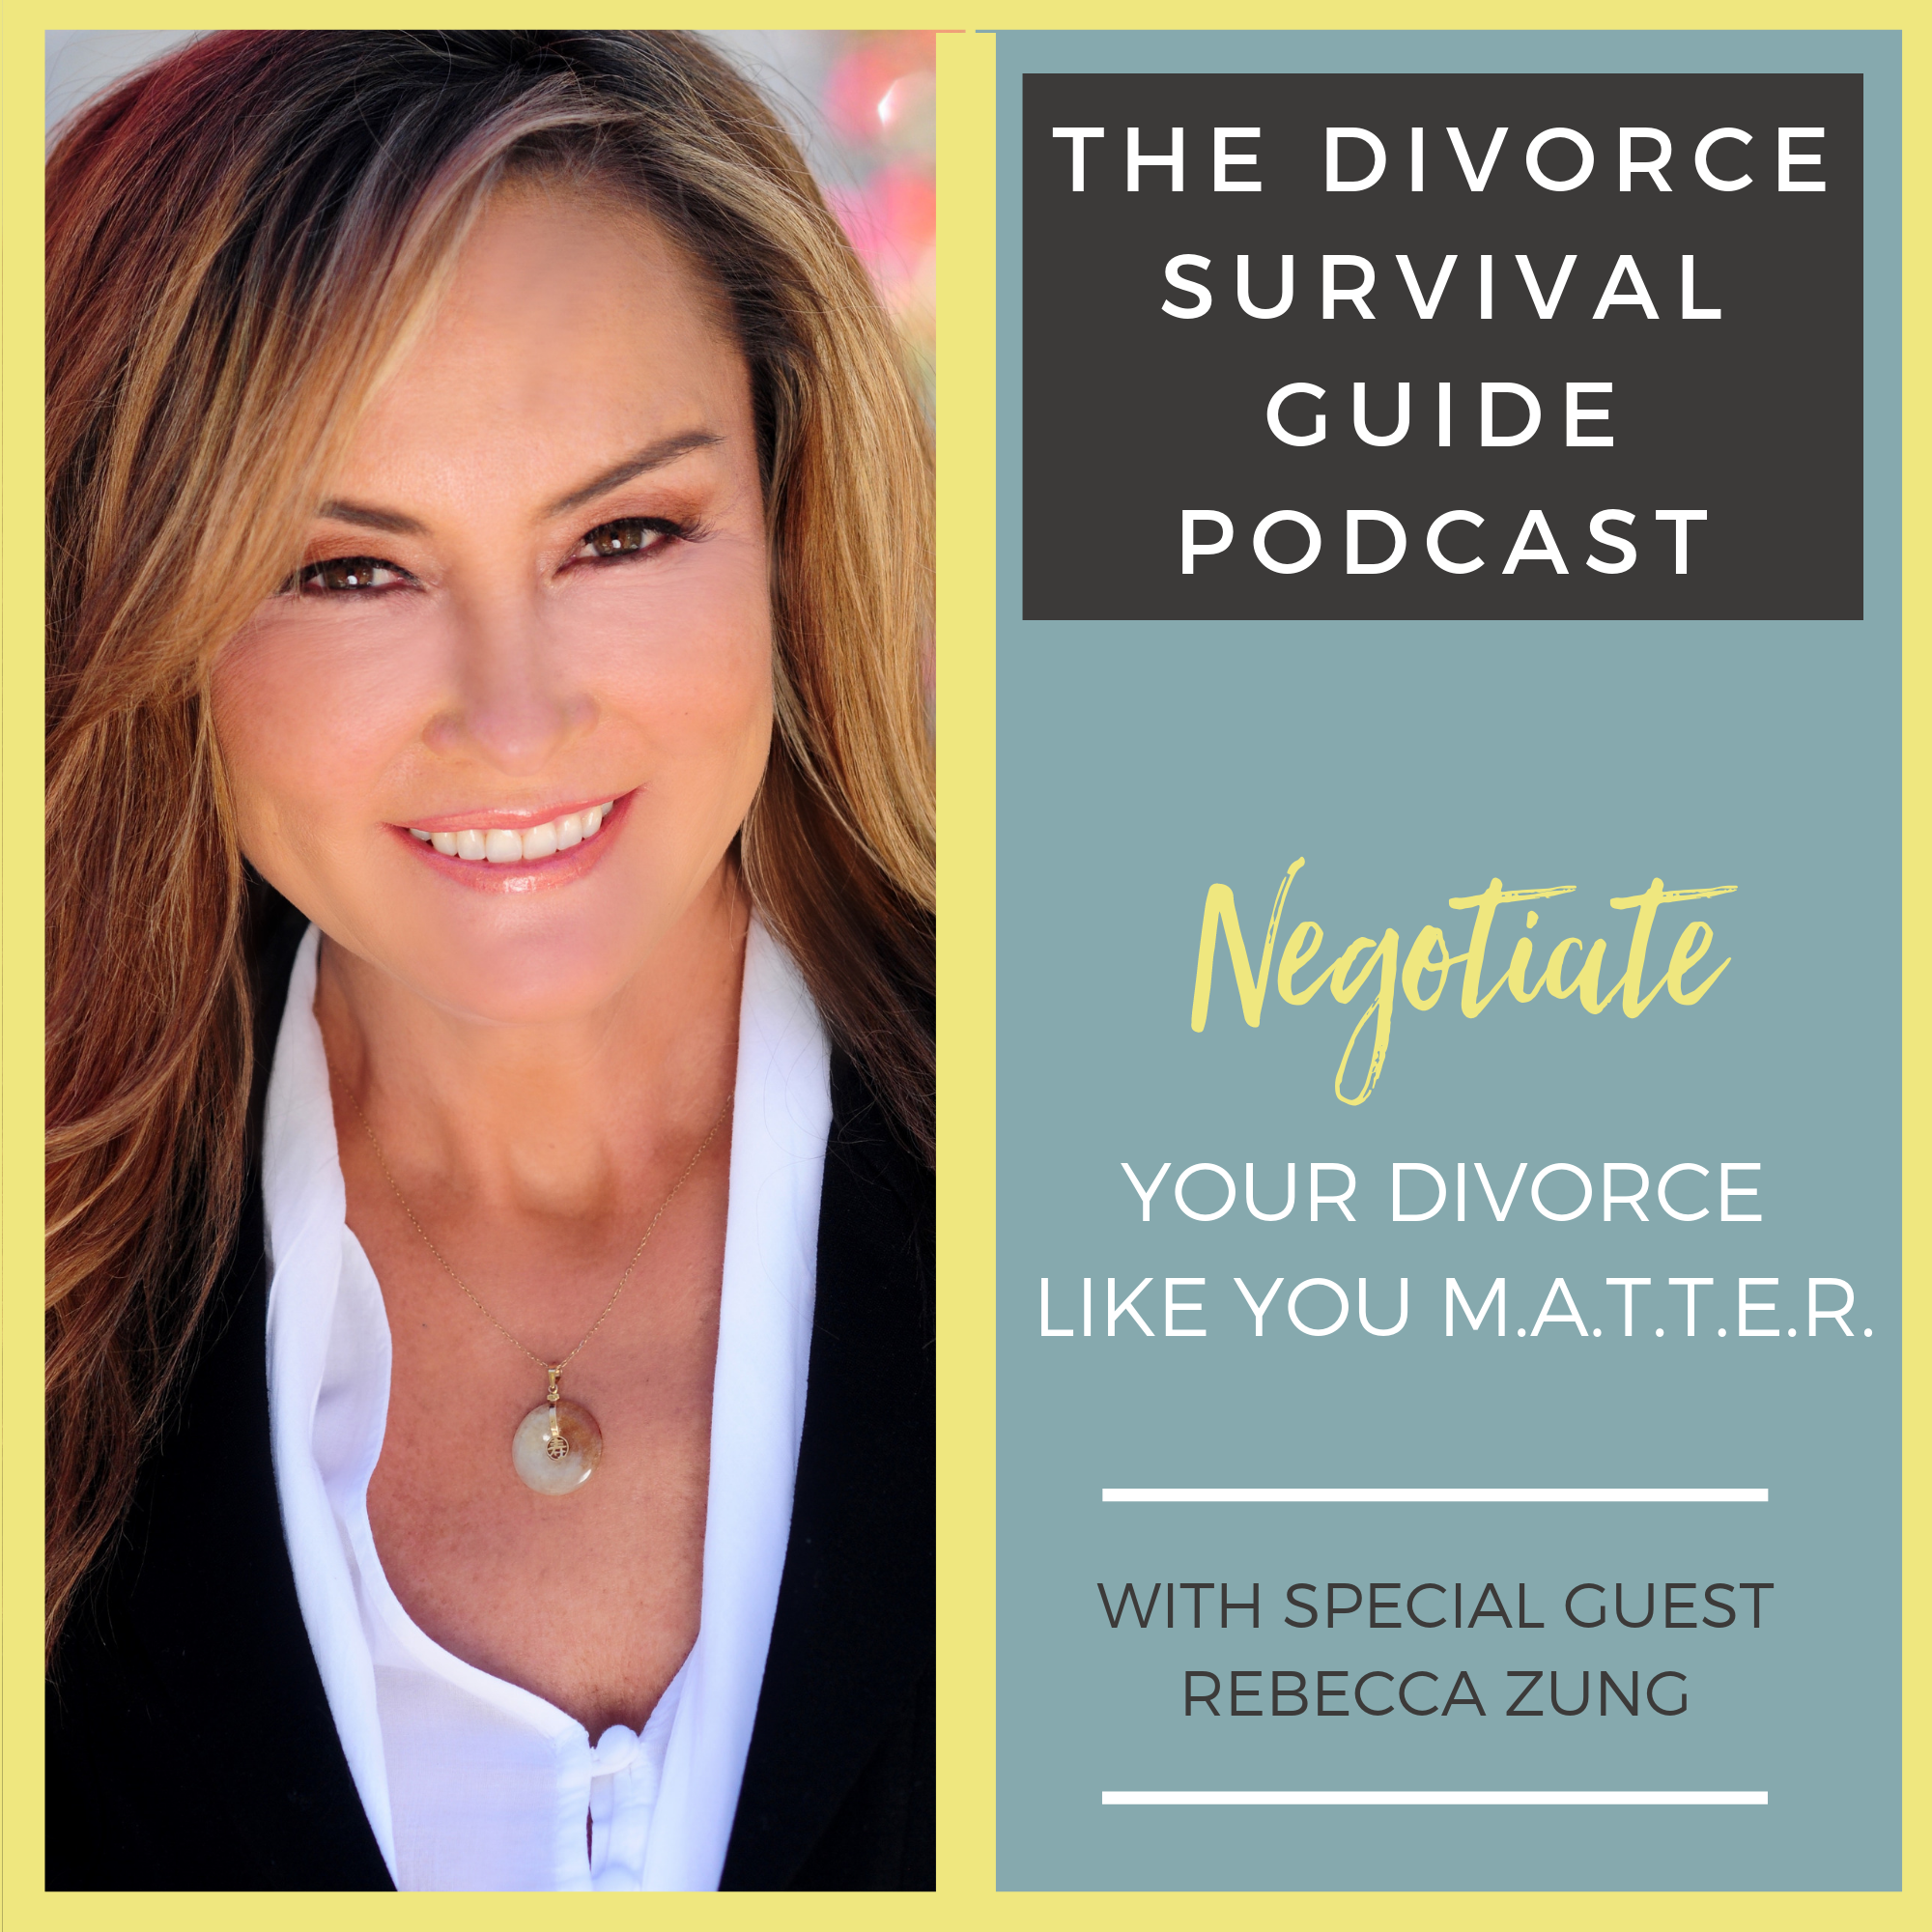 Negotiate Your Divorce Like You M A T T E R  with Rebecca